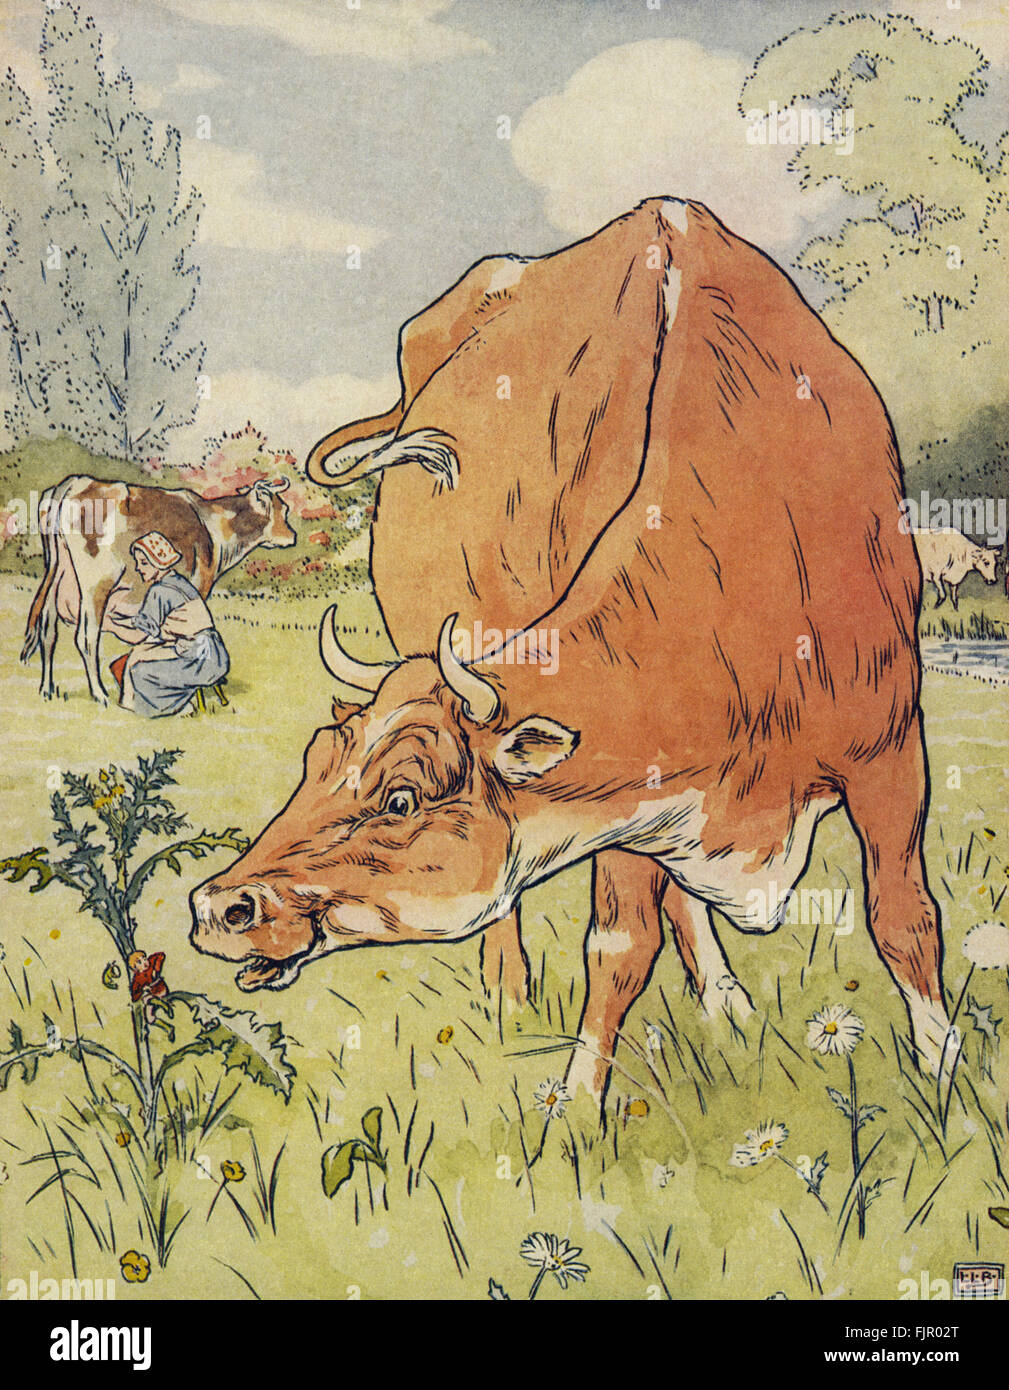 Tom Thumb sits on a thistle and is eaten by a cow, from The Golden Goose Book, 1905, illustrated by Leonard Leslie - Stock Image